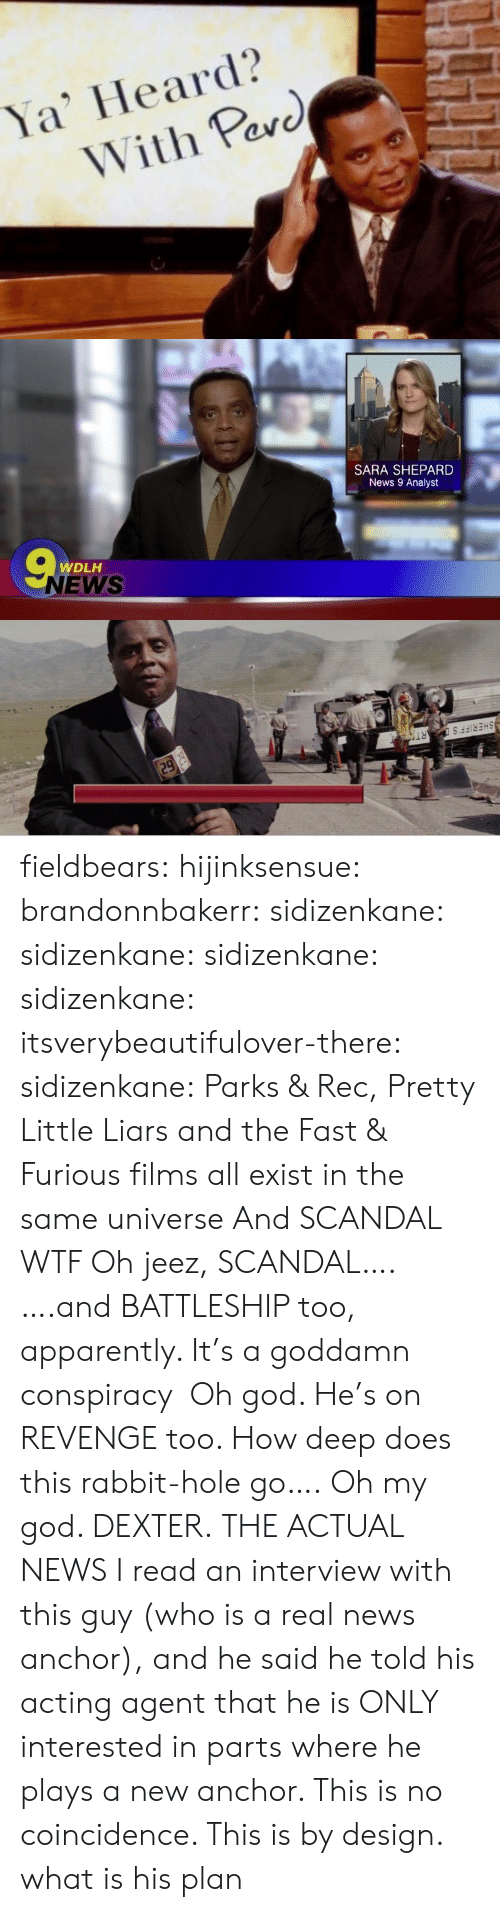 Coincidence: Ya' Heard?  With Pav  arc   SARA SHEPARD  News 9 Analyst  WDLH  NEWS   SHERIFF'  RT fieldbears:  hijinksensue:  brandonnbakerr:  sidizenkane:  sidizenkane:  sidizenkane:  sidizenkane:  itsverybeautifulover-there:  sidizenkane:  Parks & Rec, Pretty Little Liars and the Fast & Furious films all exist in the same universe  And SCANDAL WTF  Oh jeez, SCANDAL….….and BATTLESHIP too, apparently. It's a goddamn conspiracy Oh god. He's on REVENGE too. How deep does this rabbit-hole go…. Oh my god. DEXTER. THE ACTUAL NEWS   I read an interview with this guy (who is a real news anchor), and he said he told his acting agent that he is ONLY interested in parts where he plays a new anchor. This is no coincidence. This is by design.  what is his plan